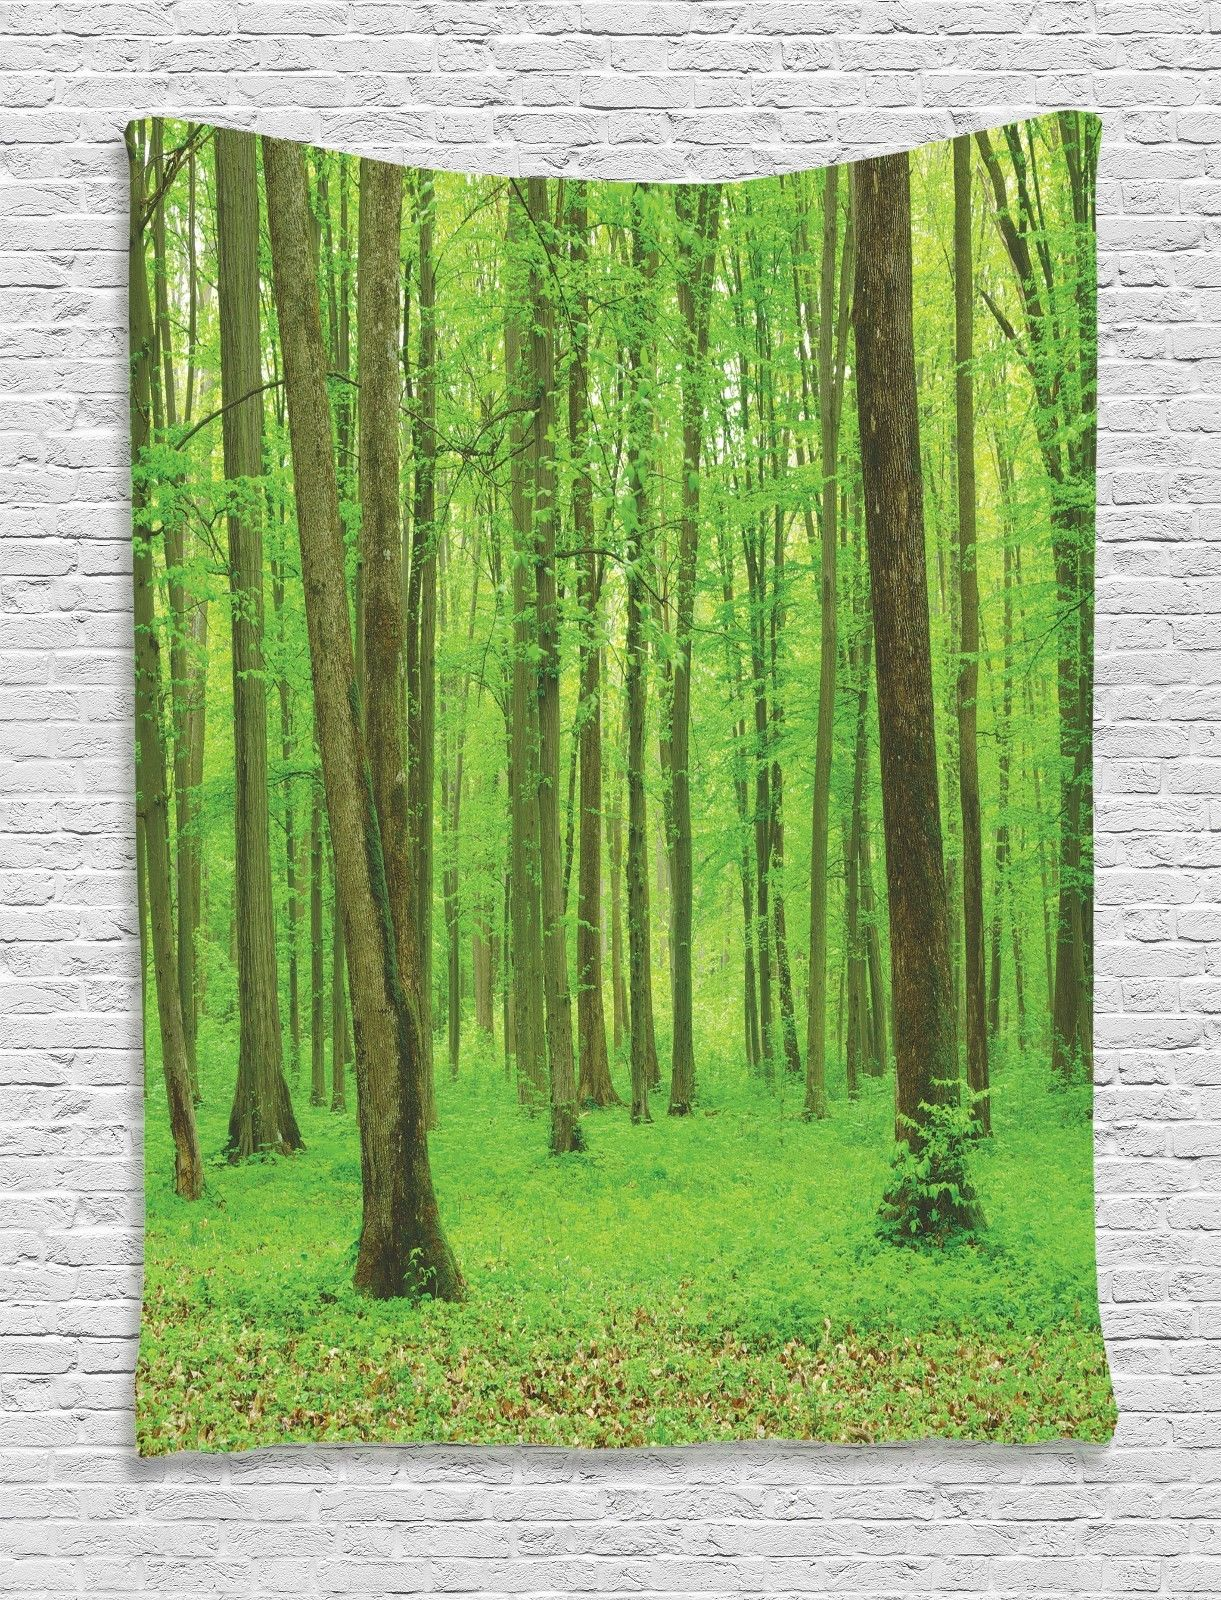 Rainforest theme fresh nature green decor nature zen image for Decoration zen et nature